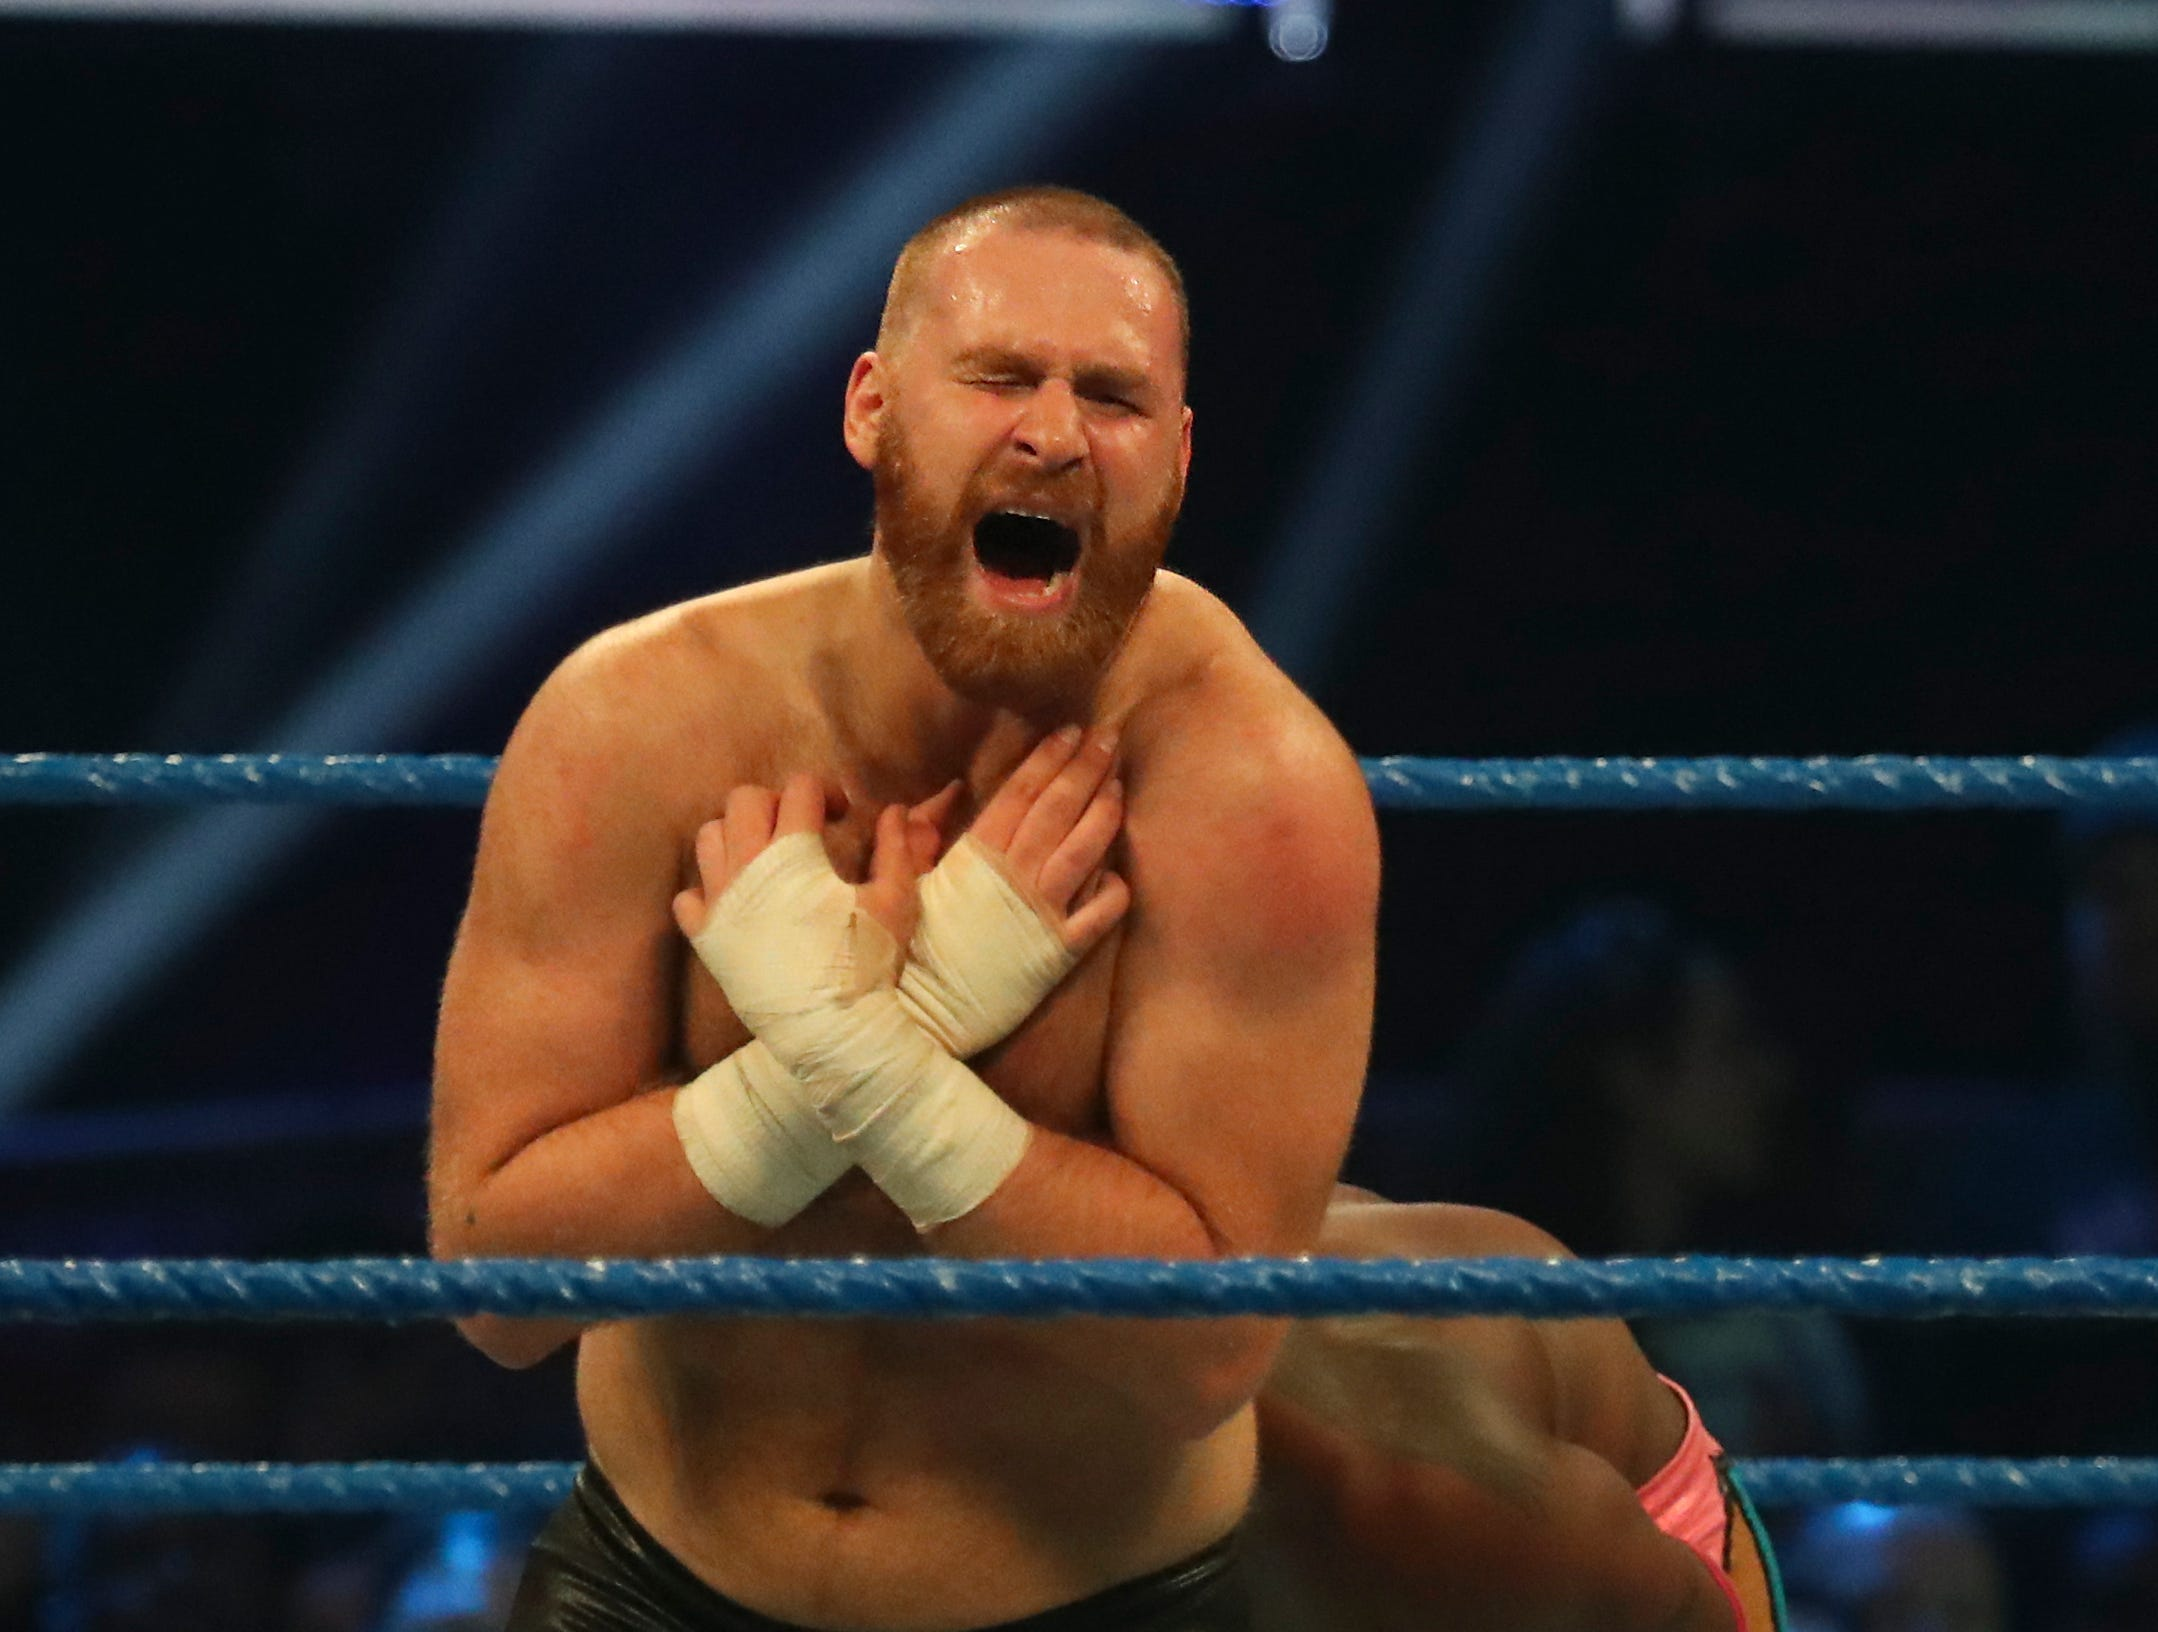 Sami Zayn is in pain after Kofi Kingston hit him during WWE Smackdown on May 7.